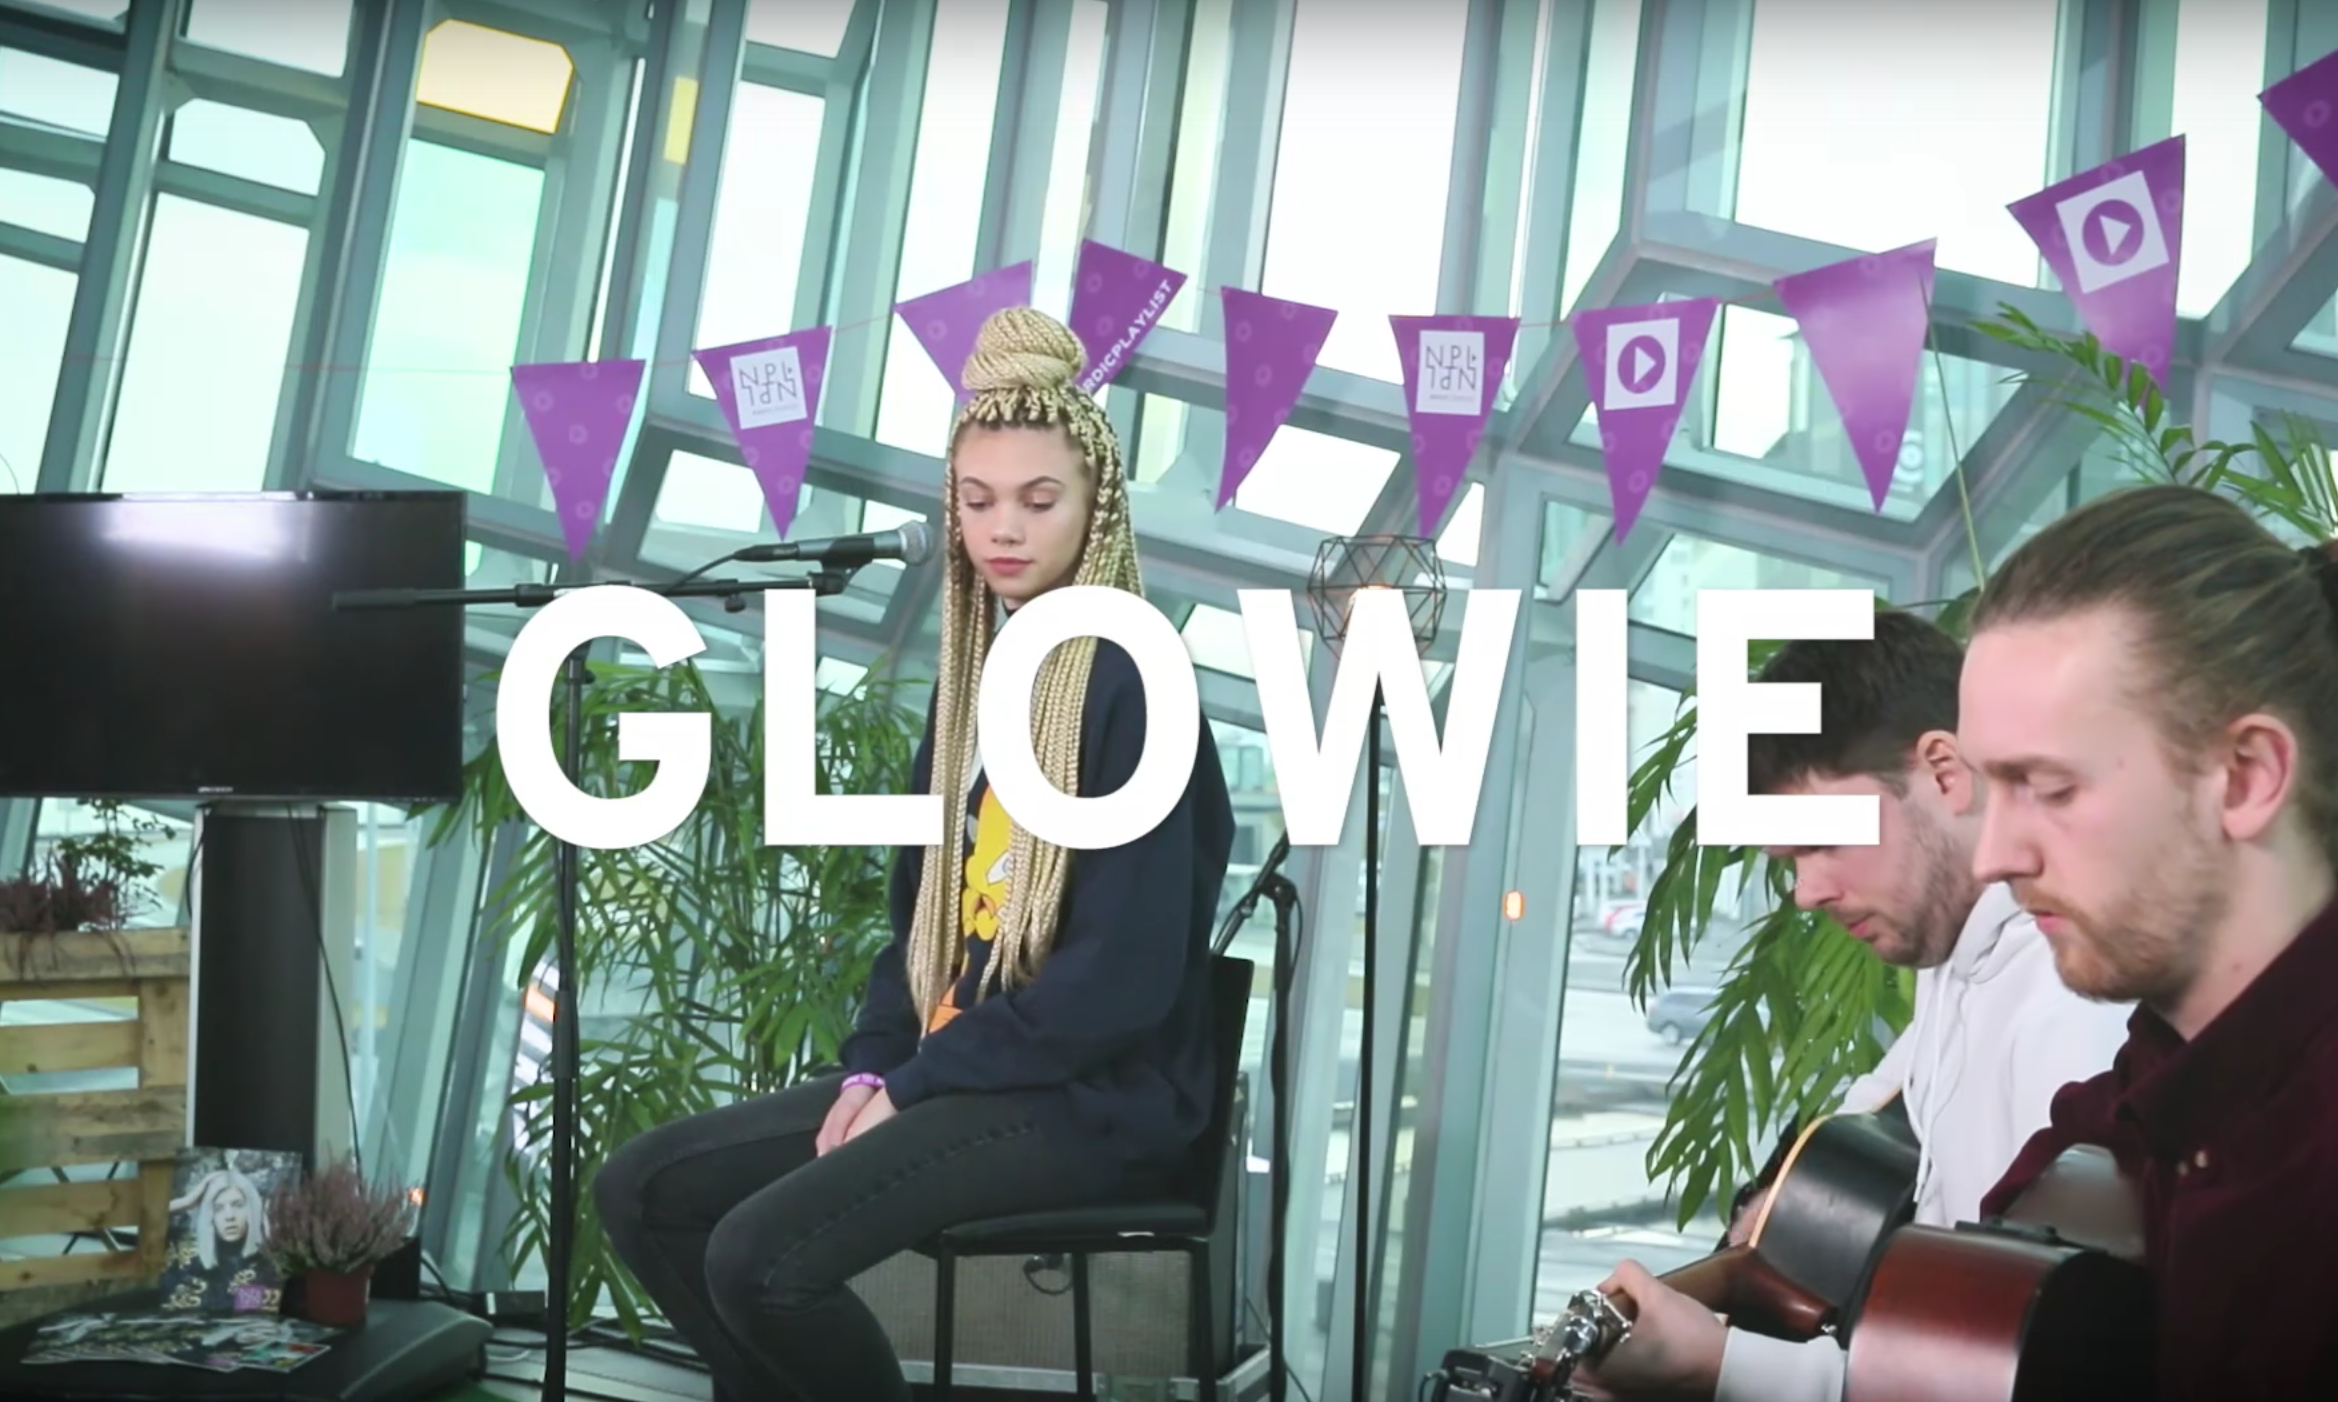 Glowie performs an acoustic version of 'One Day' for the Nordic Playlist!